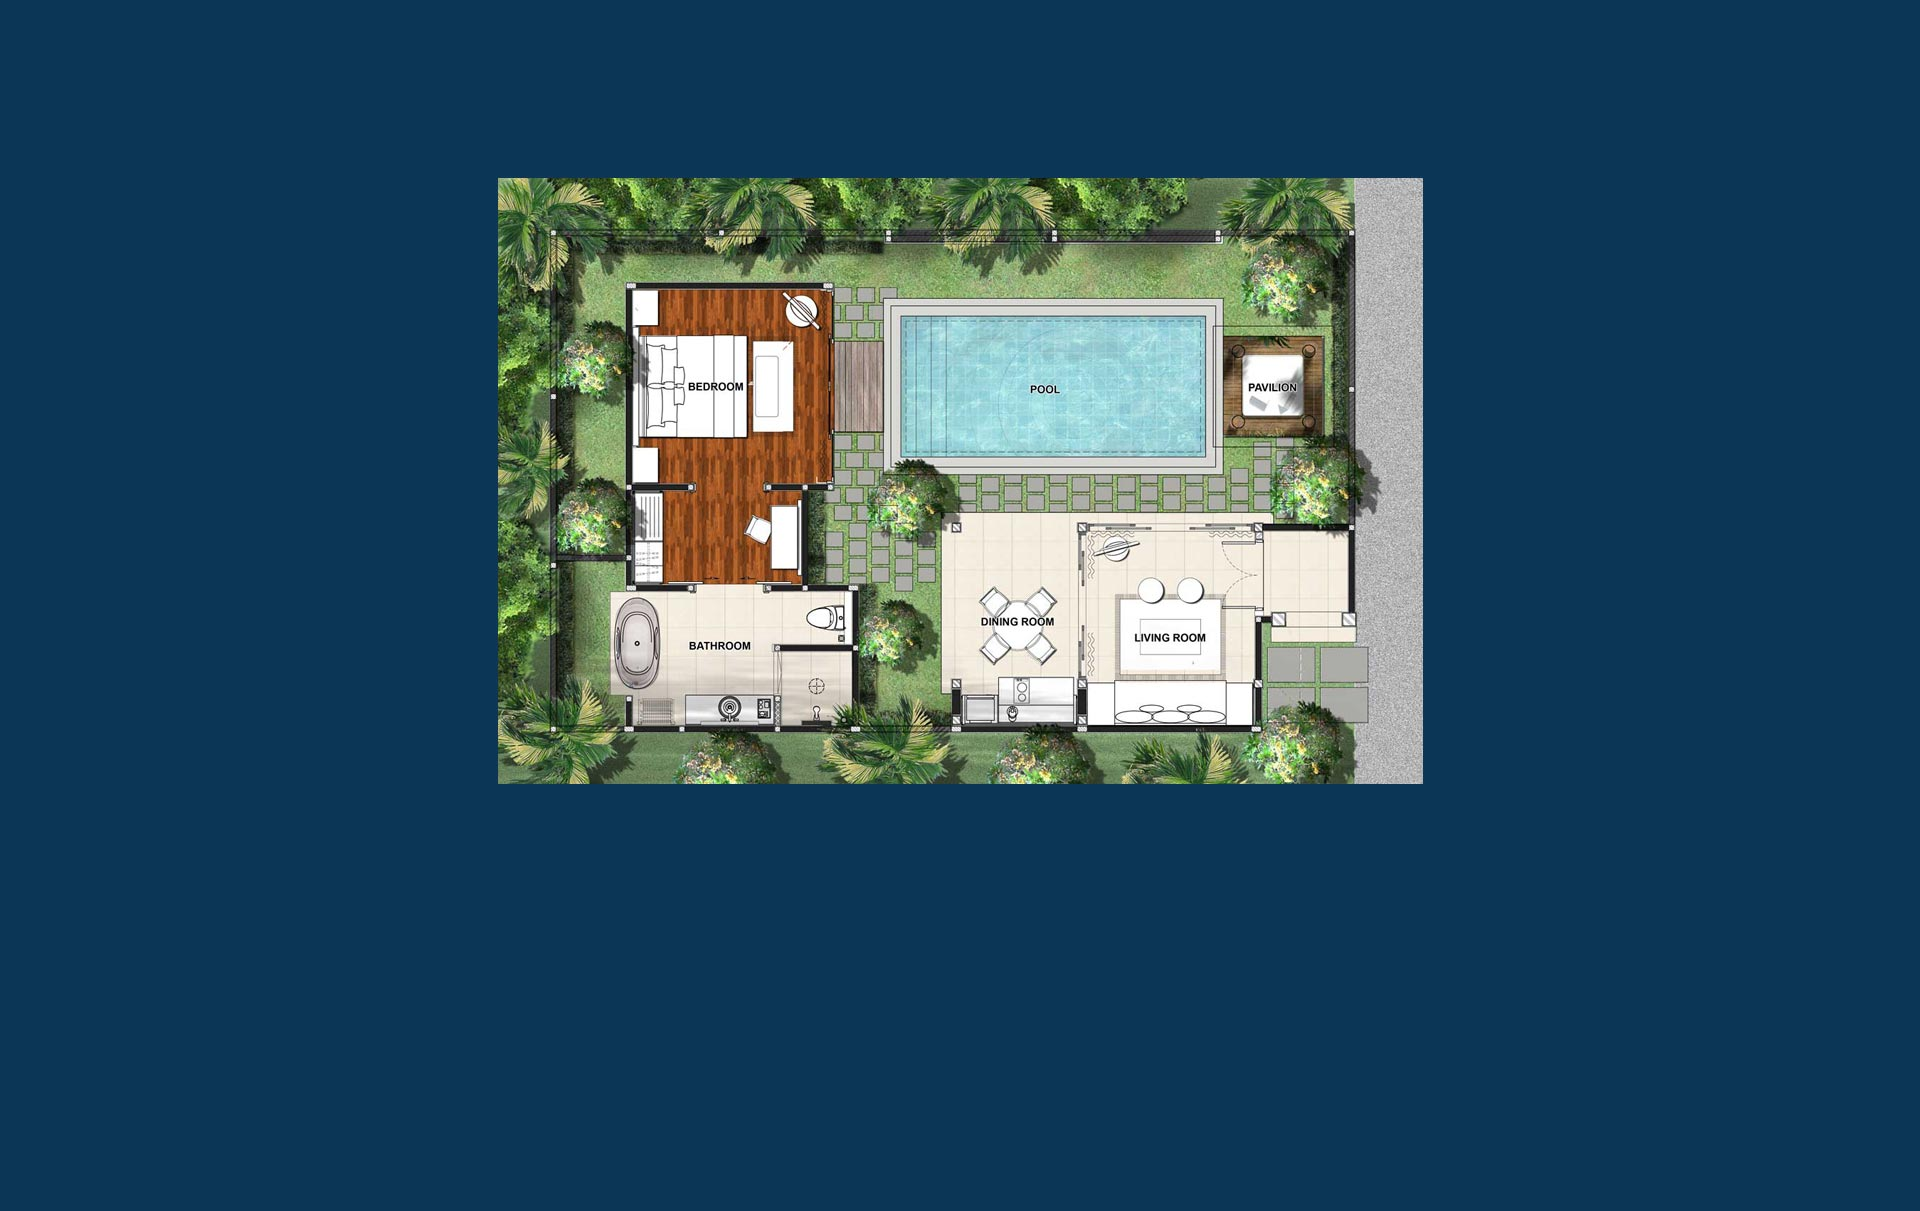 1 Bedroom Villa Floorplan